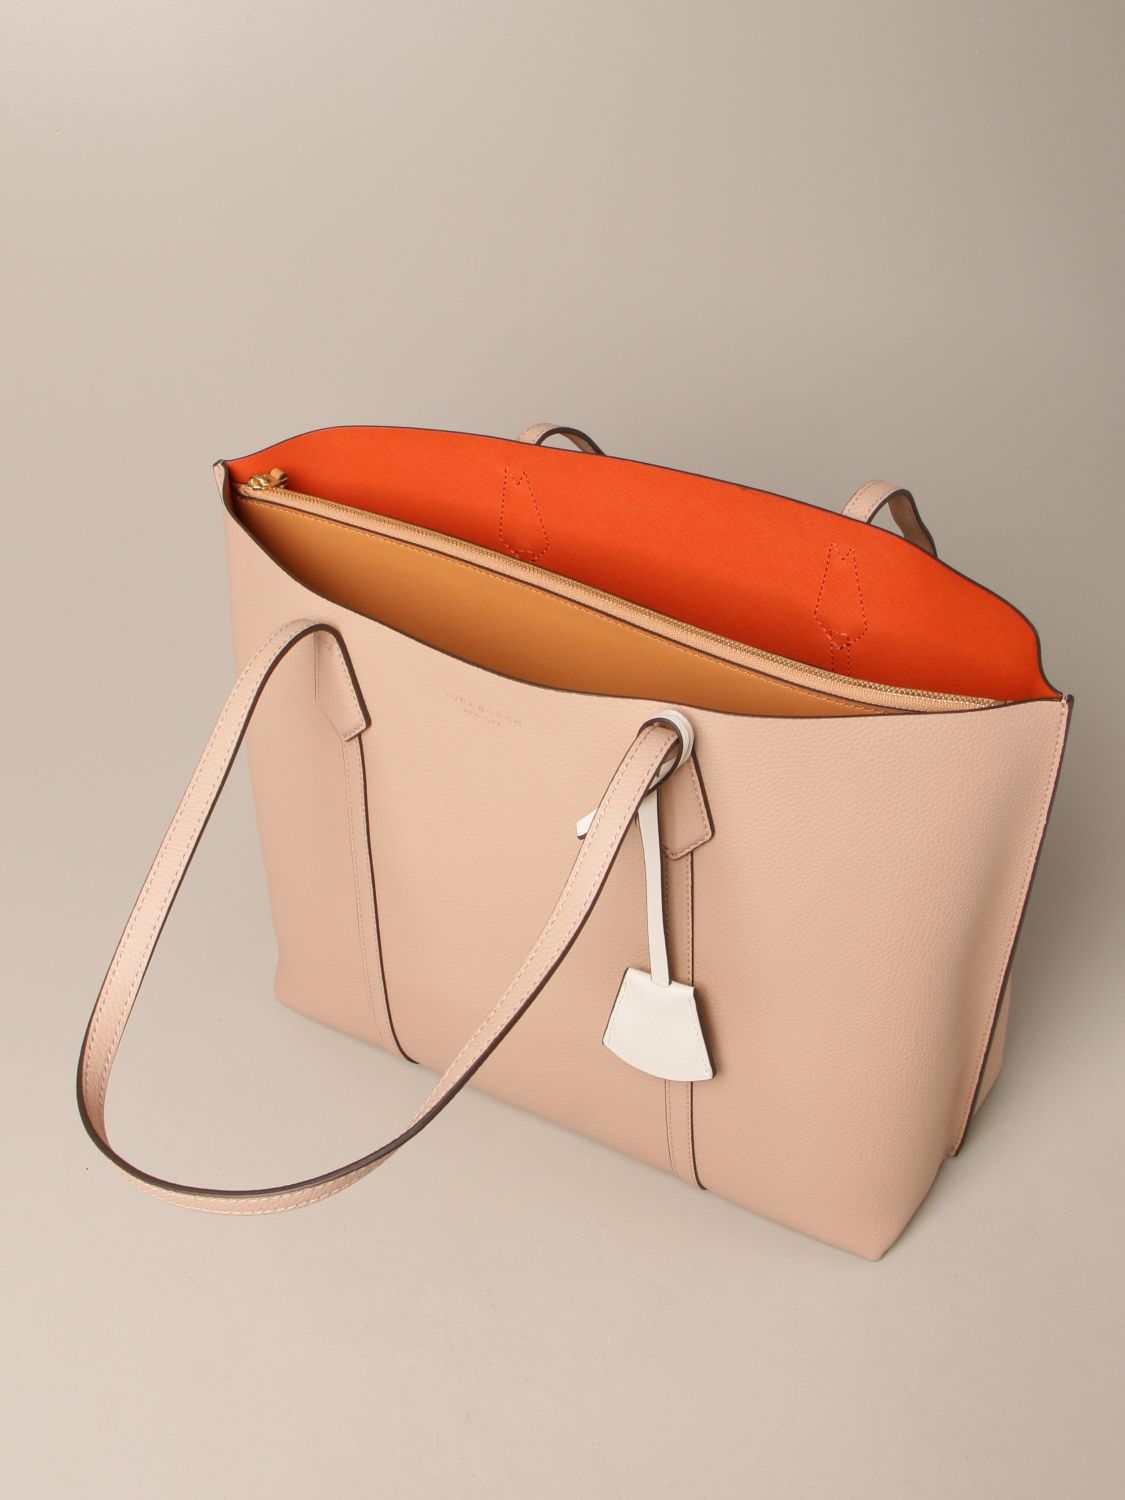 Handbag Tory Burch: Perry Tory Burch bag in textured leather pink 4